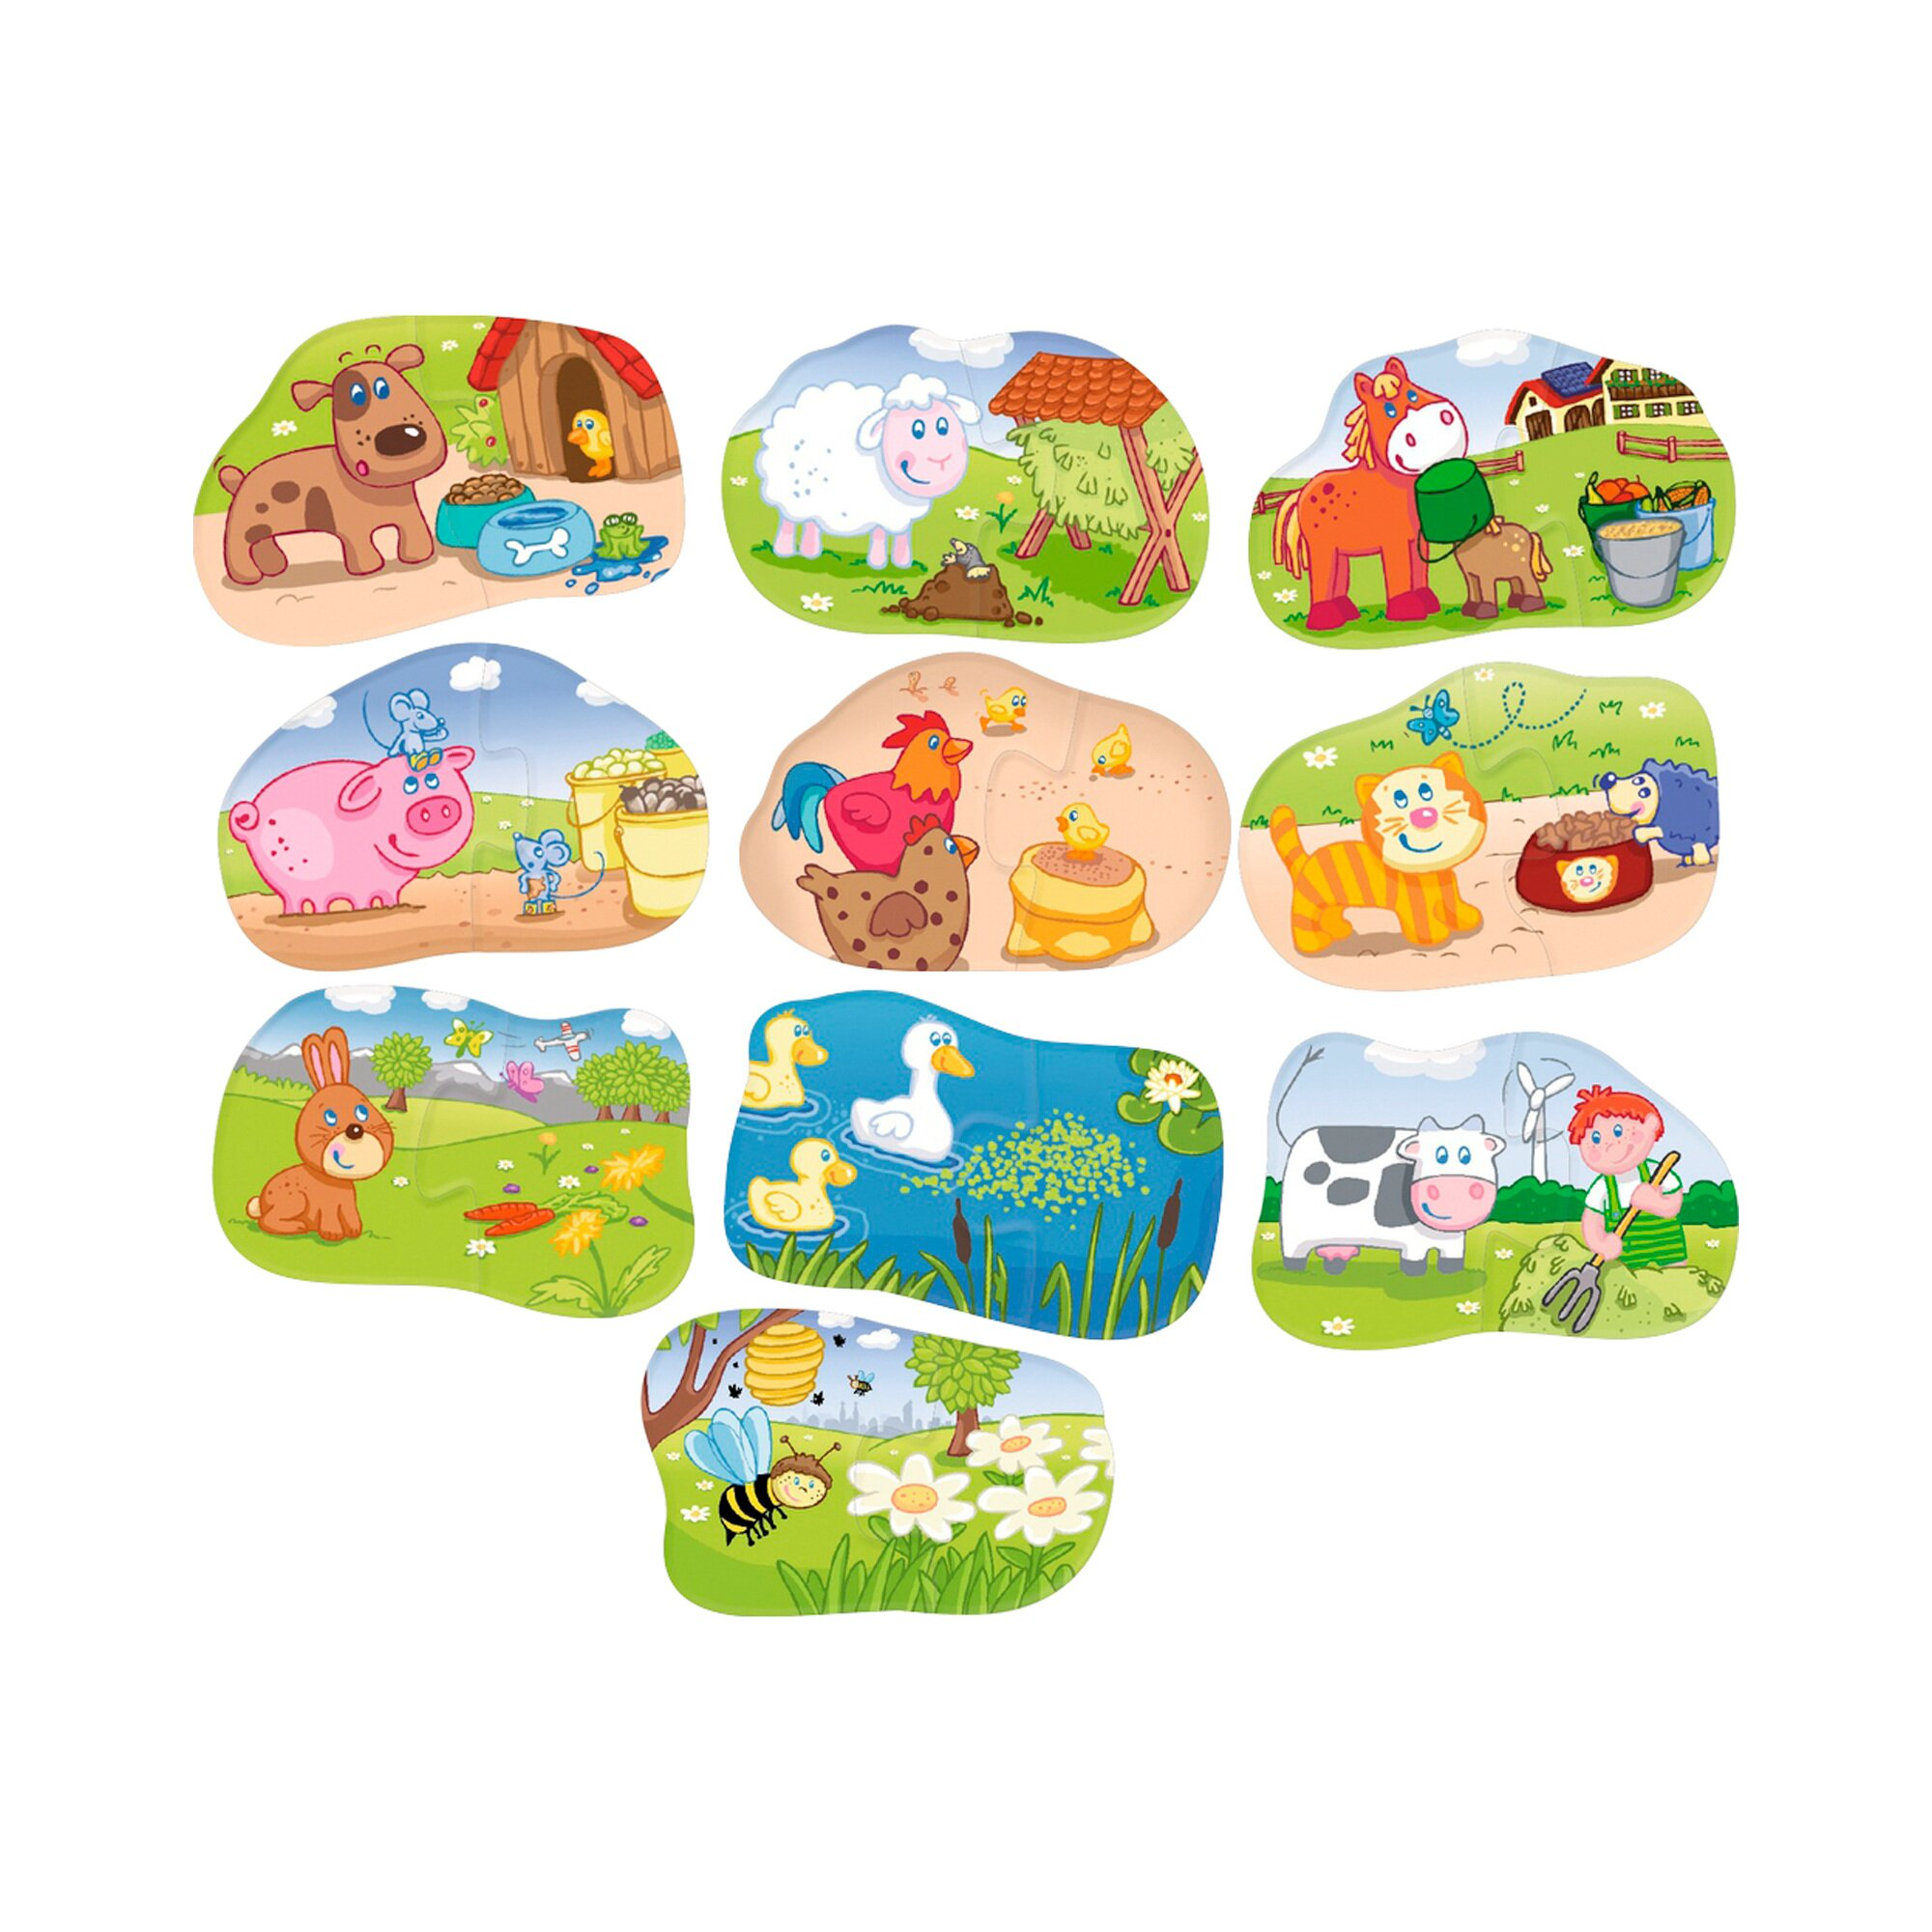 haba-puzzle-1-2-puzzelei-tiere-futtern